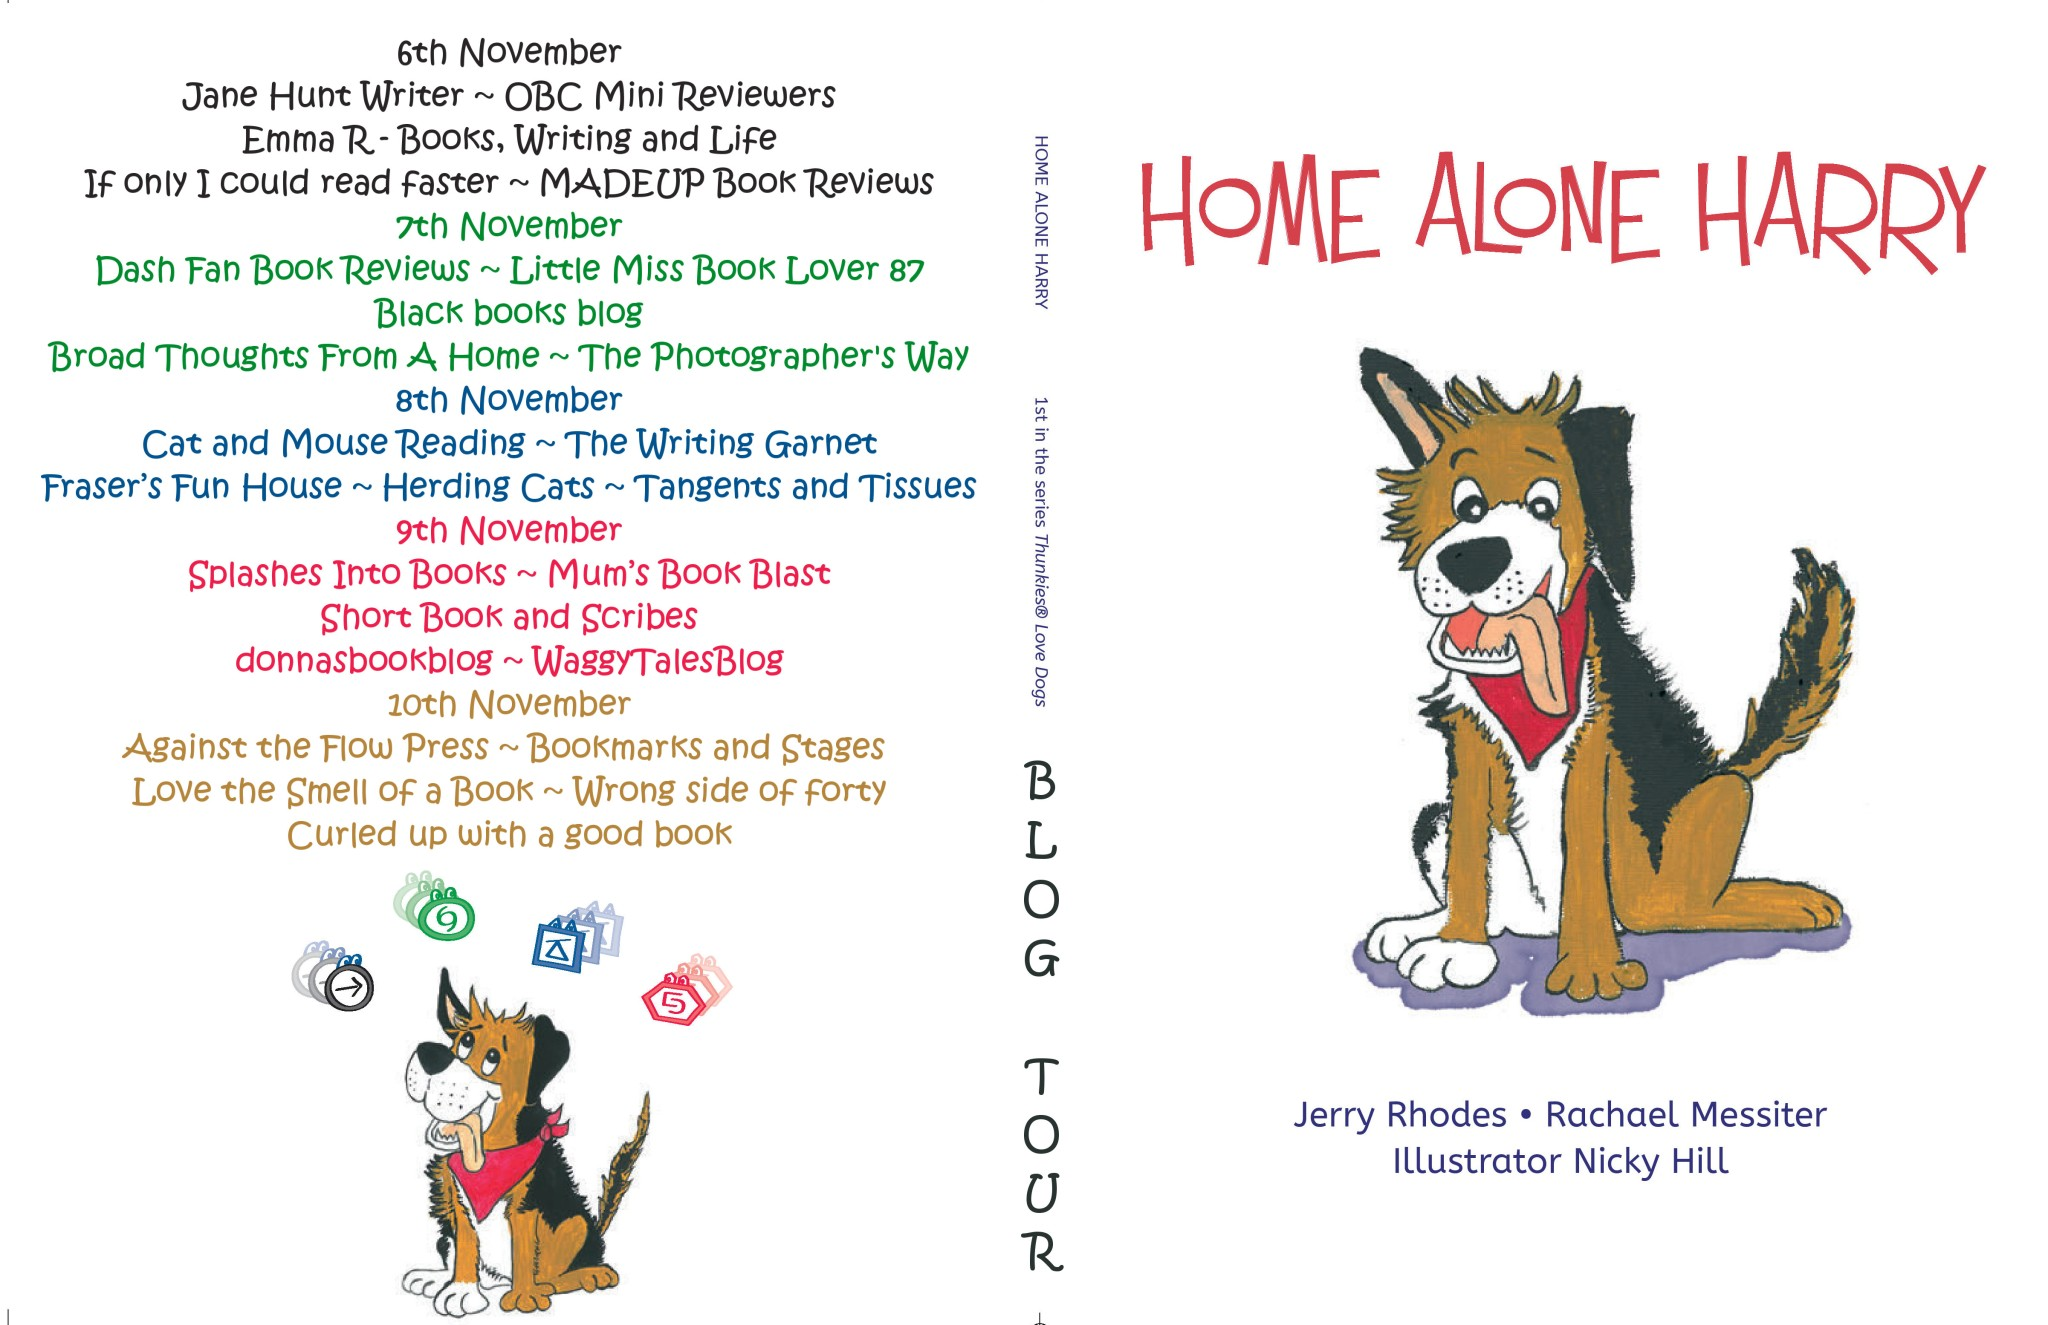 Home Alone Harry Full Tour Banner